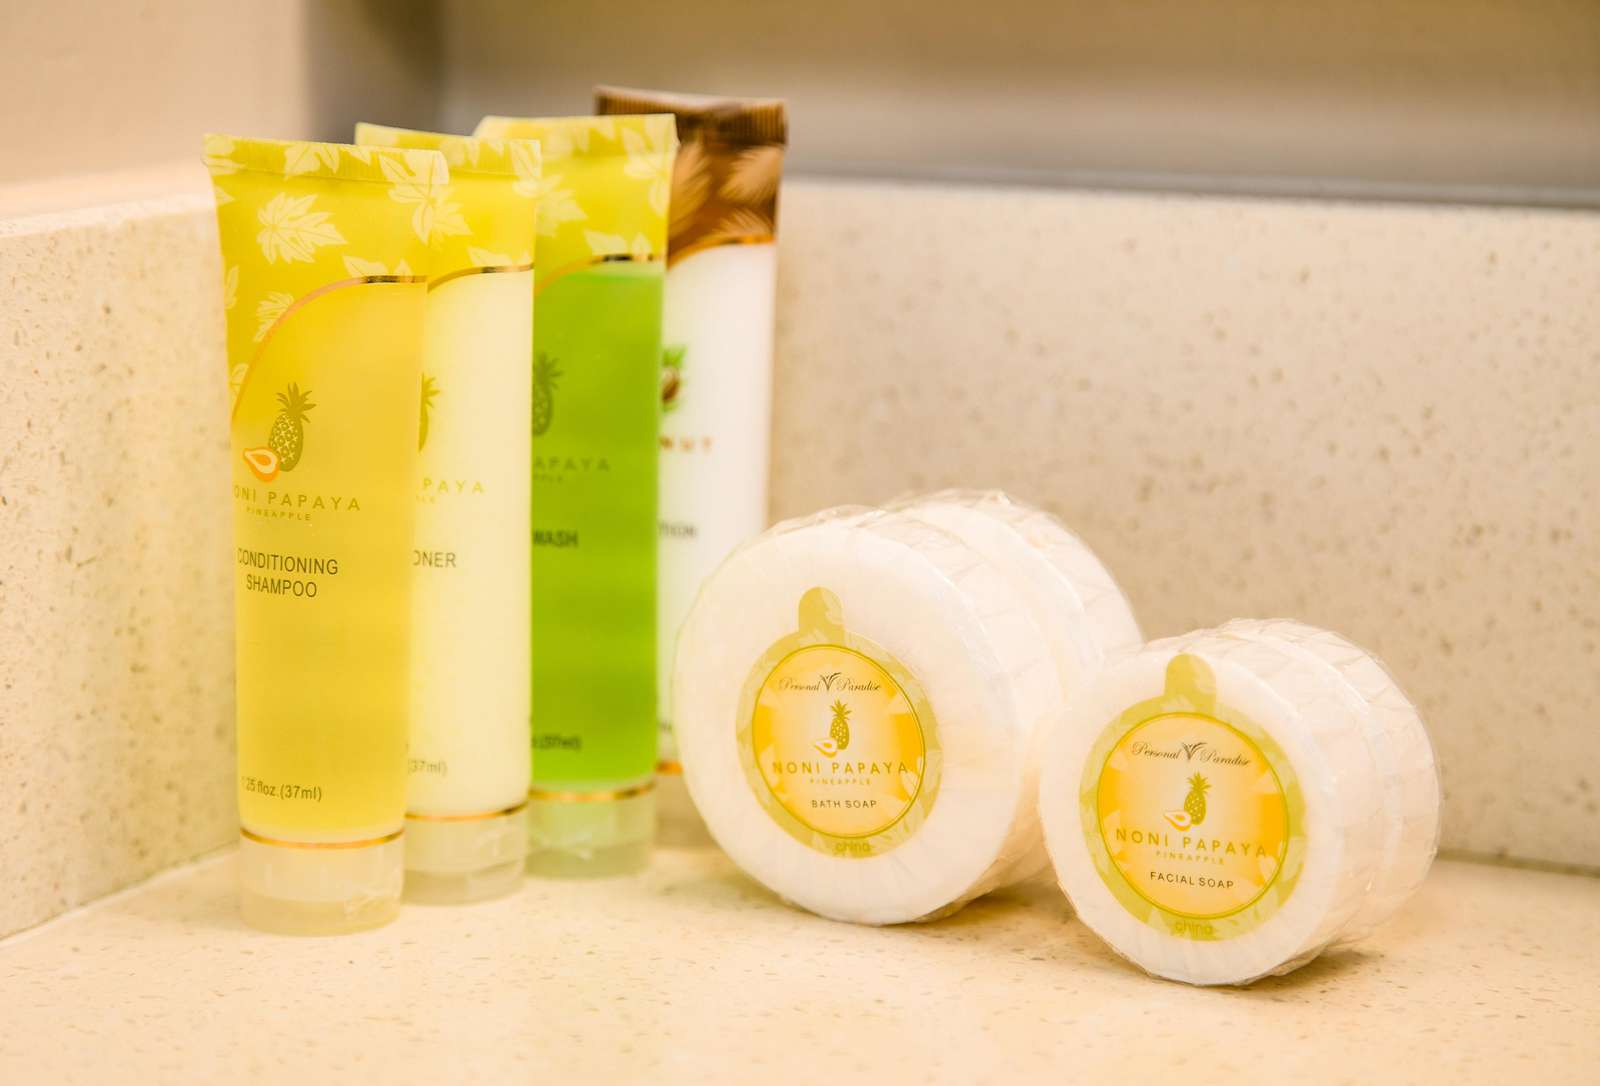 First couple of days soaps & shampoo